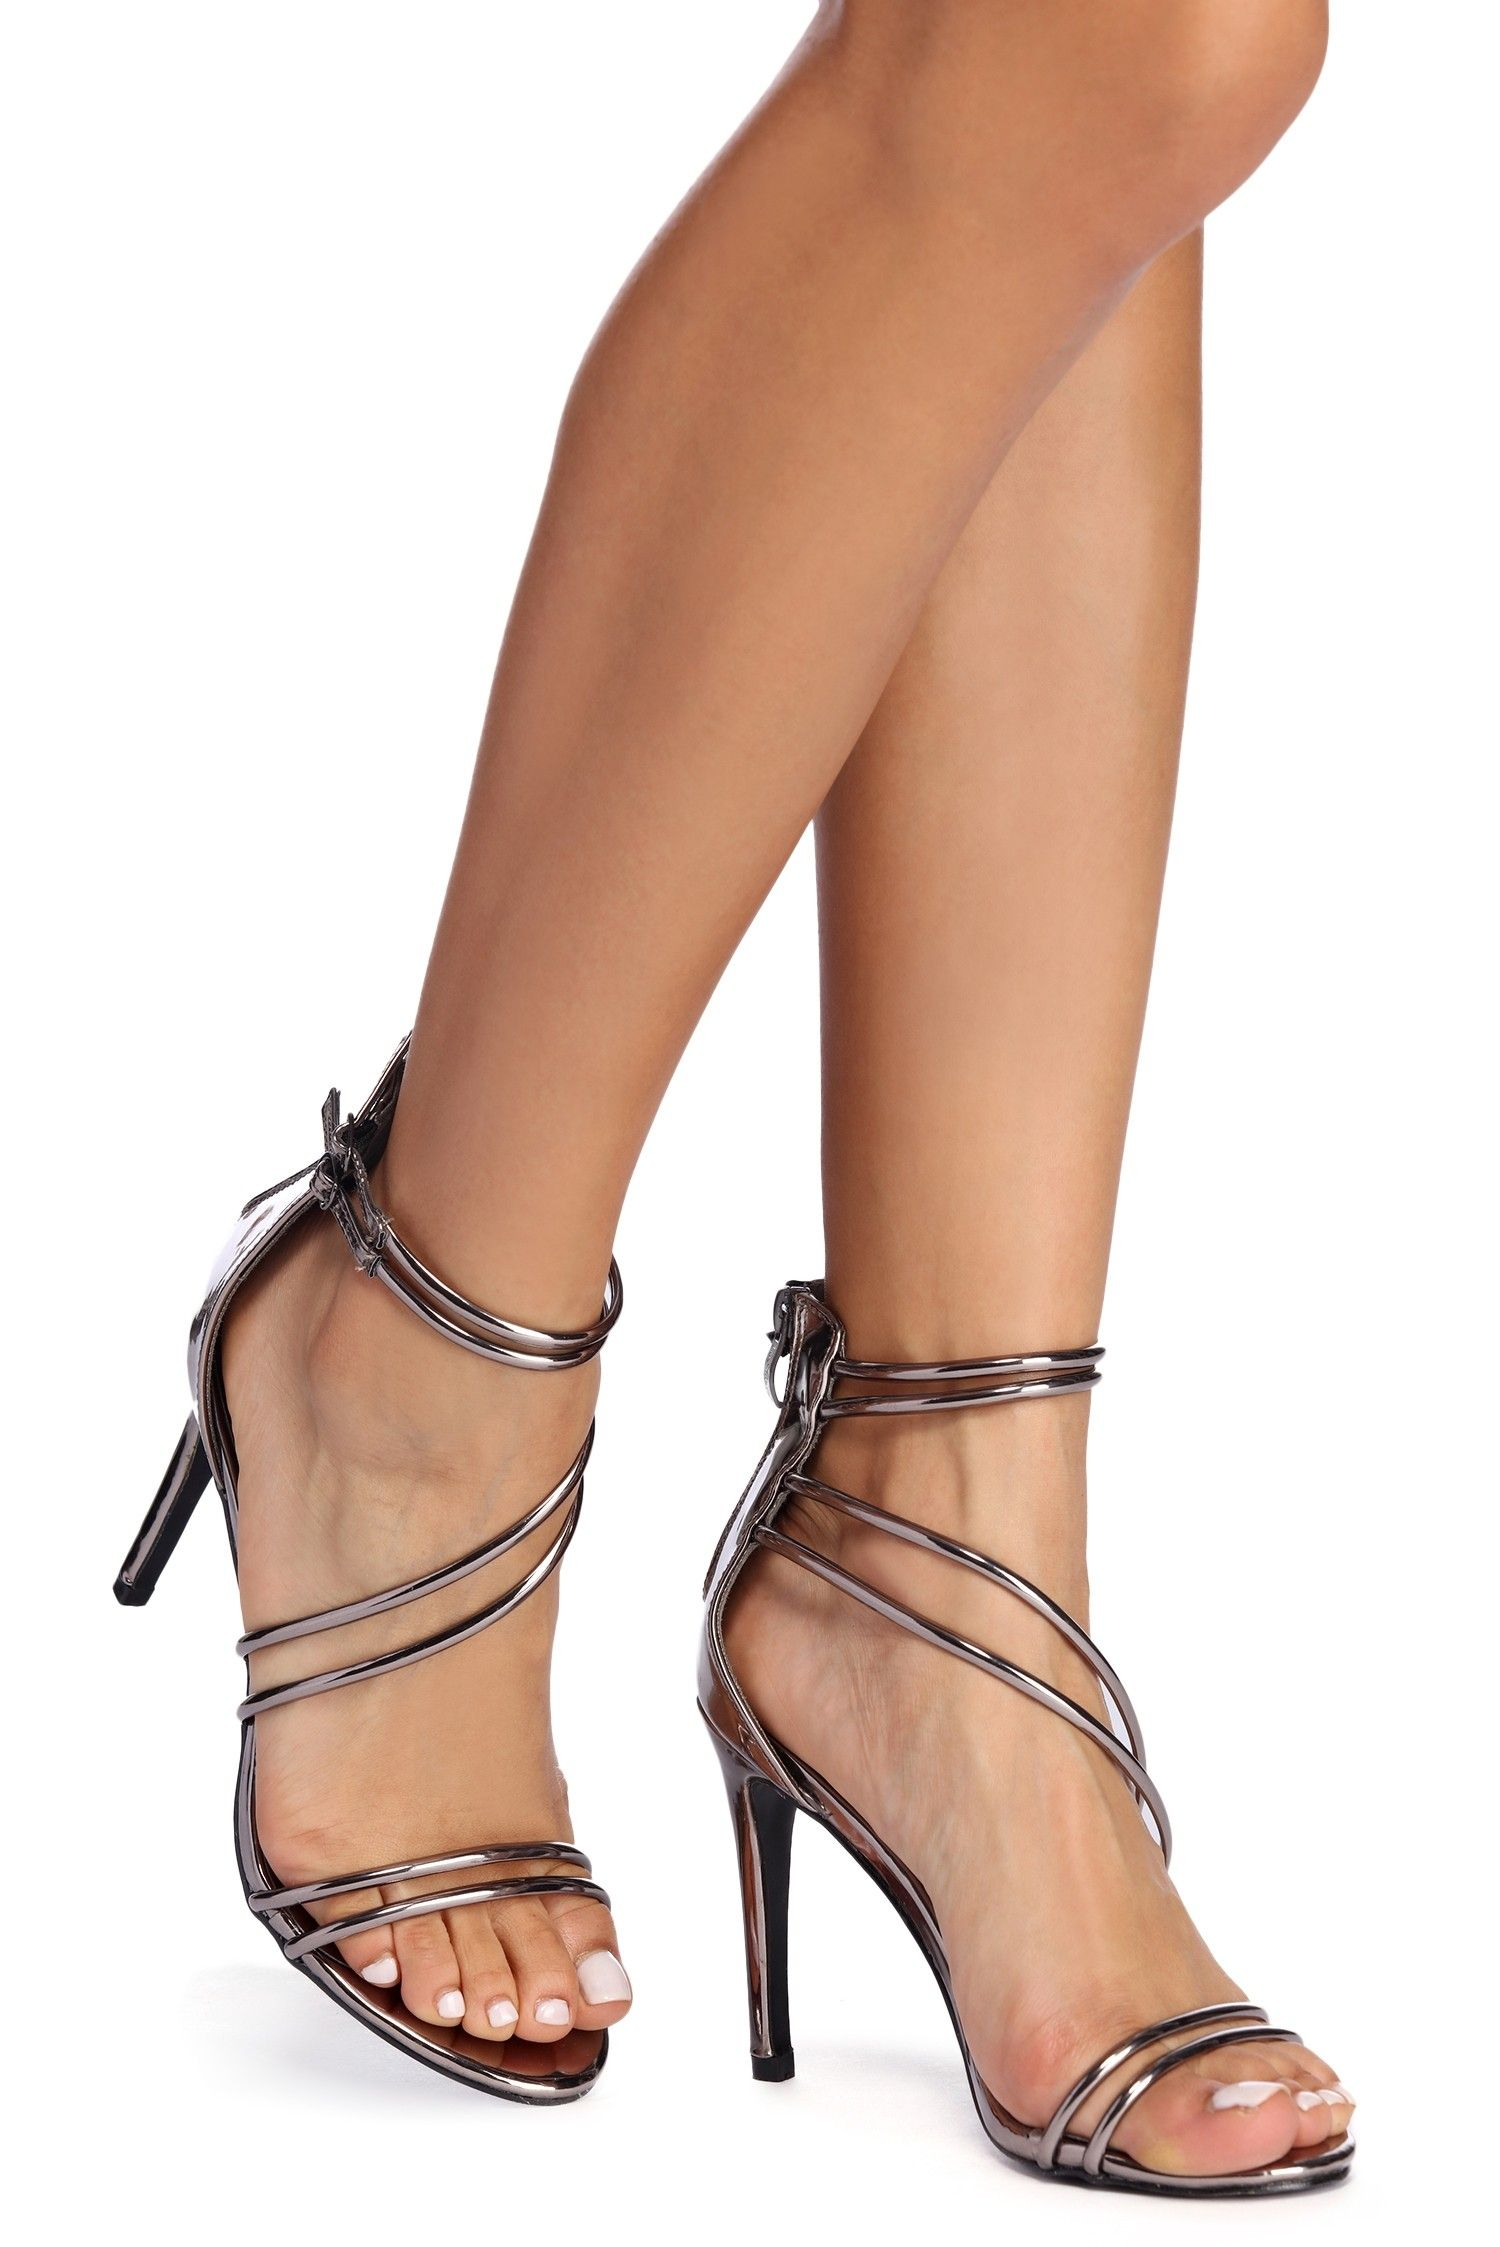 usa cheap sale super cute limited guantity Pewter Sleek And Strappy Heels | Stiletto heels, Heels, Fashion heels